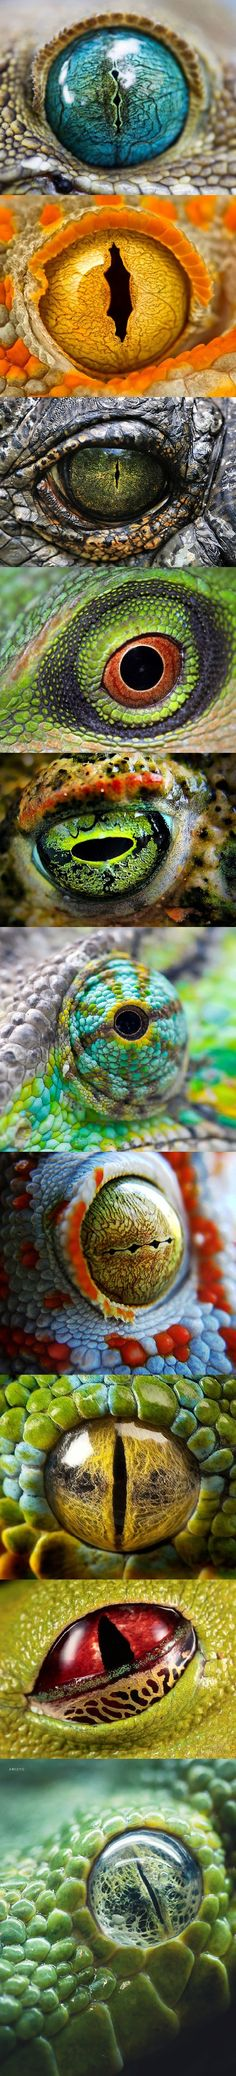 colorful animals | amazing collection | eyes